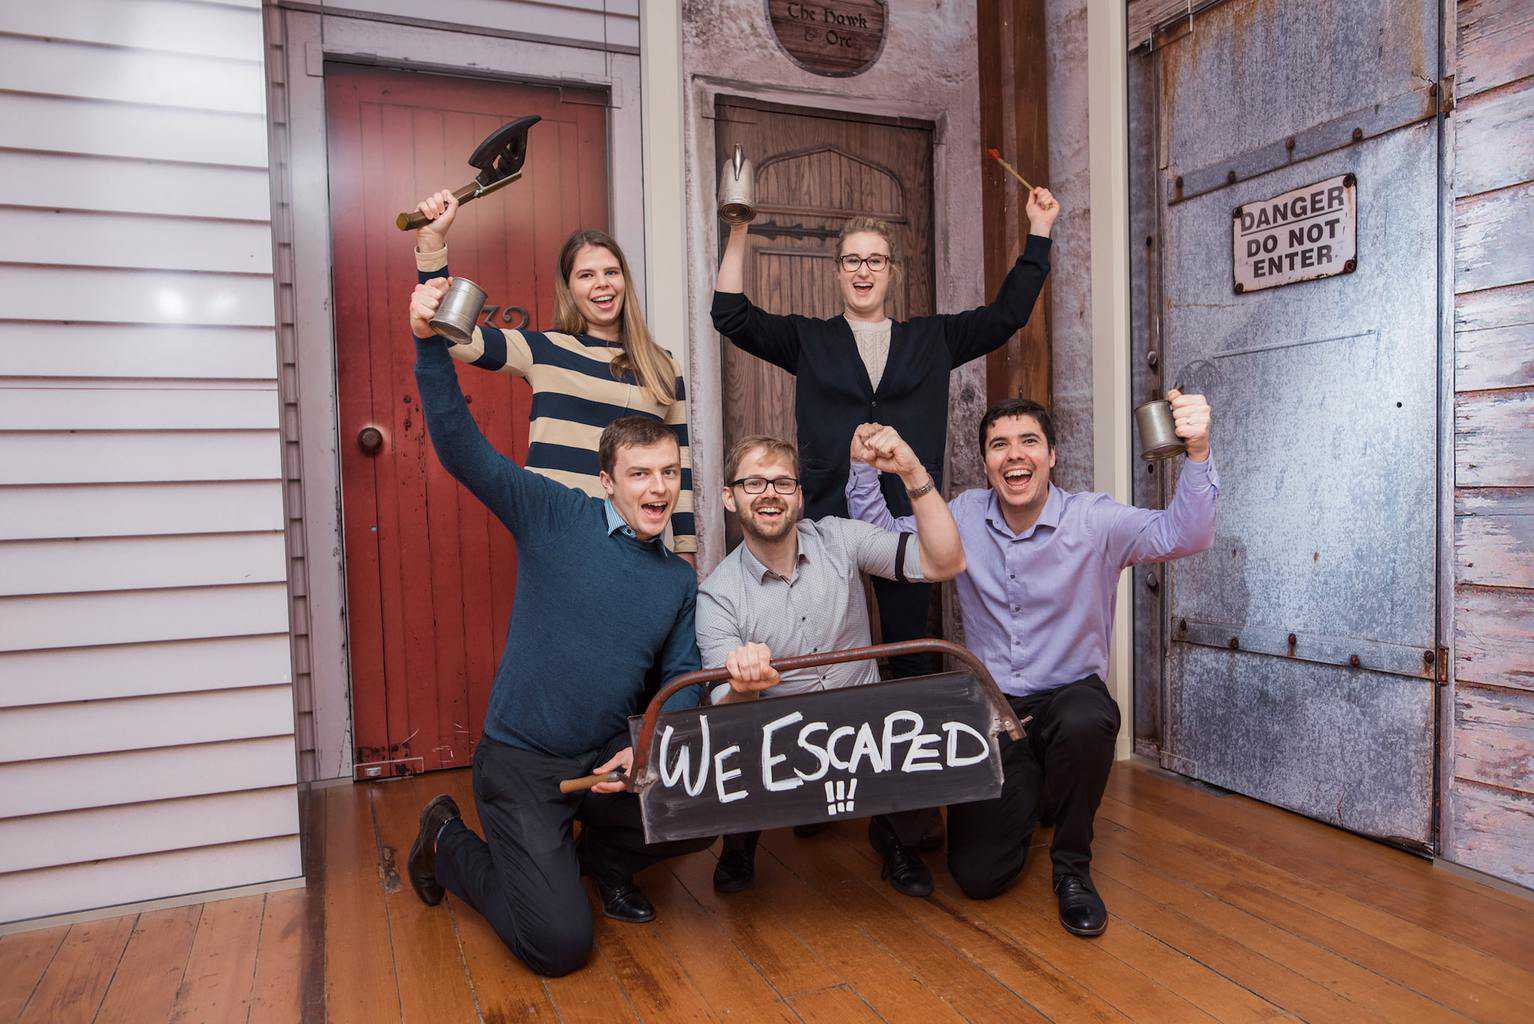 Team celebrating escaping the escape room